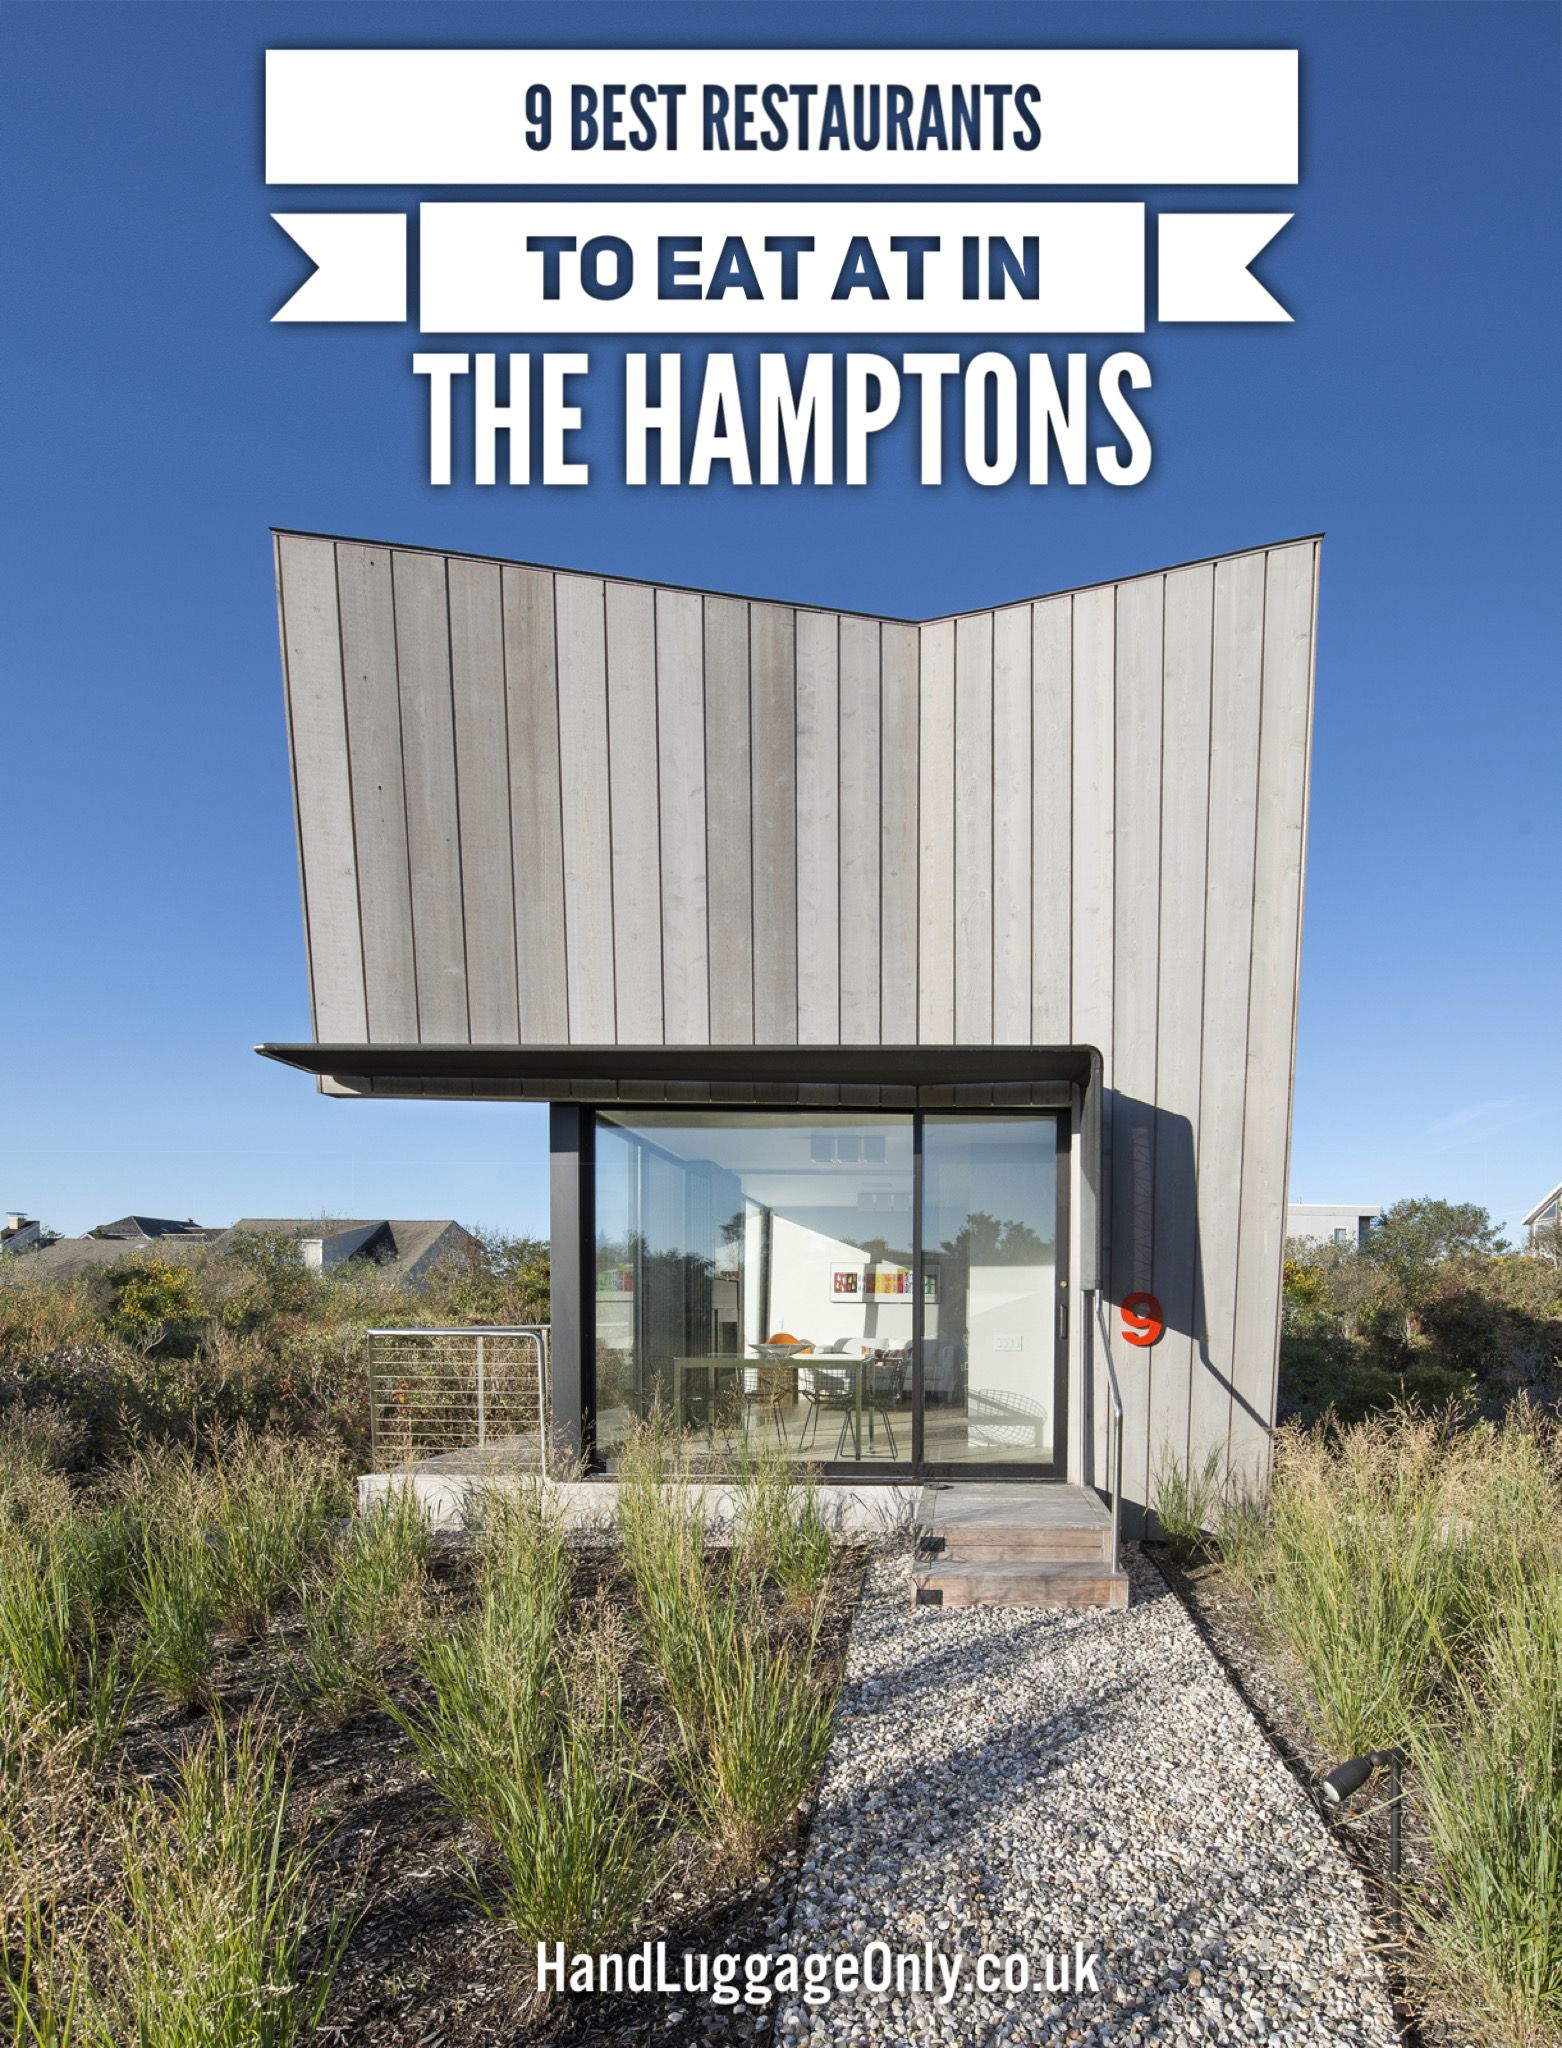 Amazing Things To Do In The Hamptons (1)